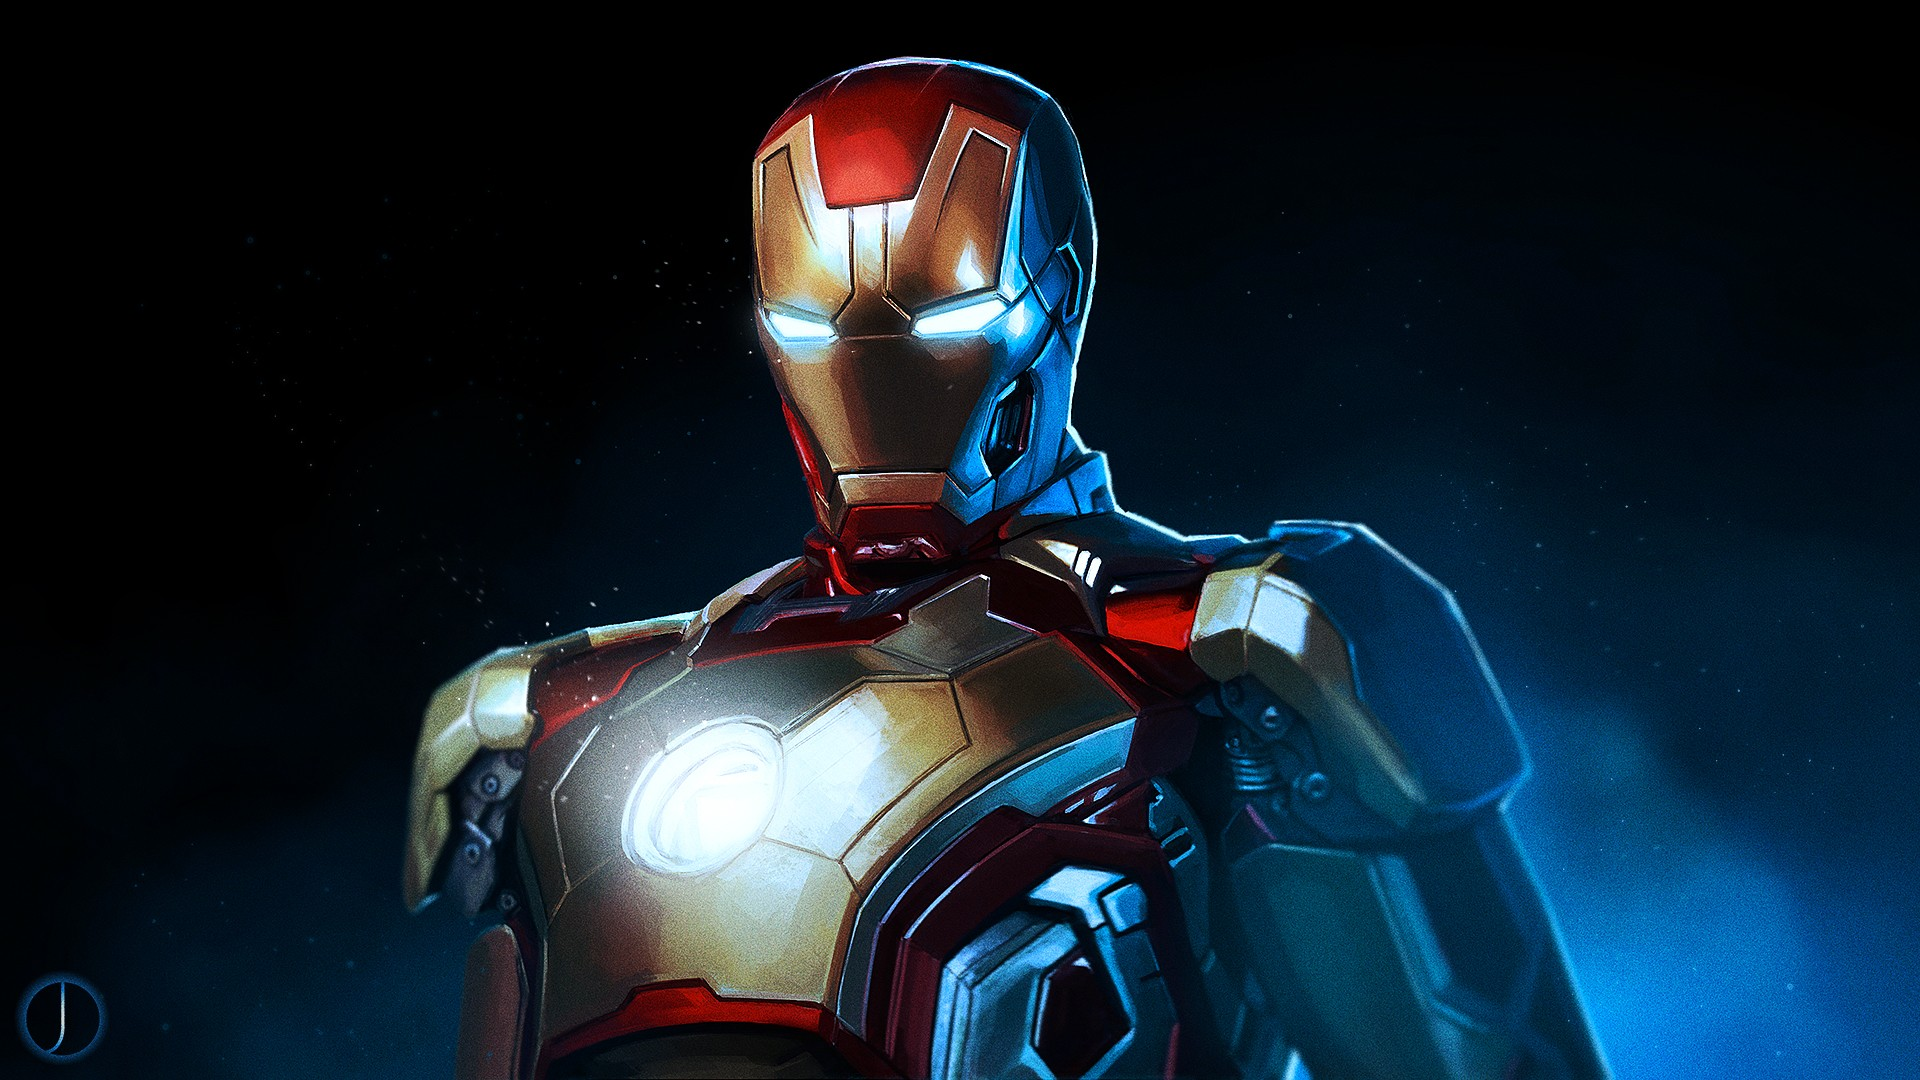 Cool Iron Man Wallpaper